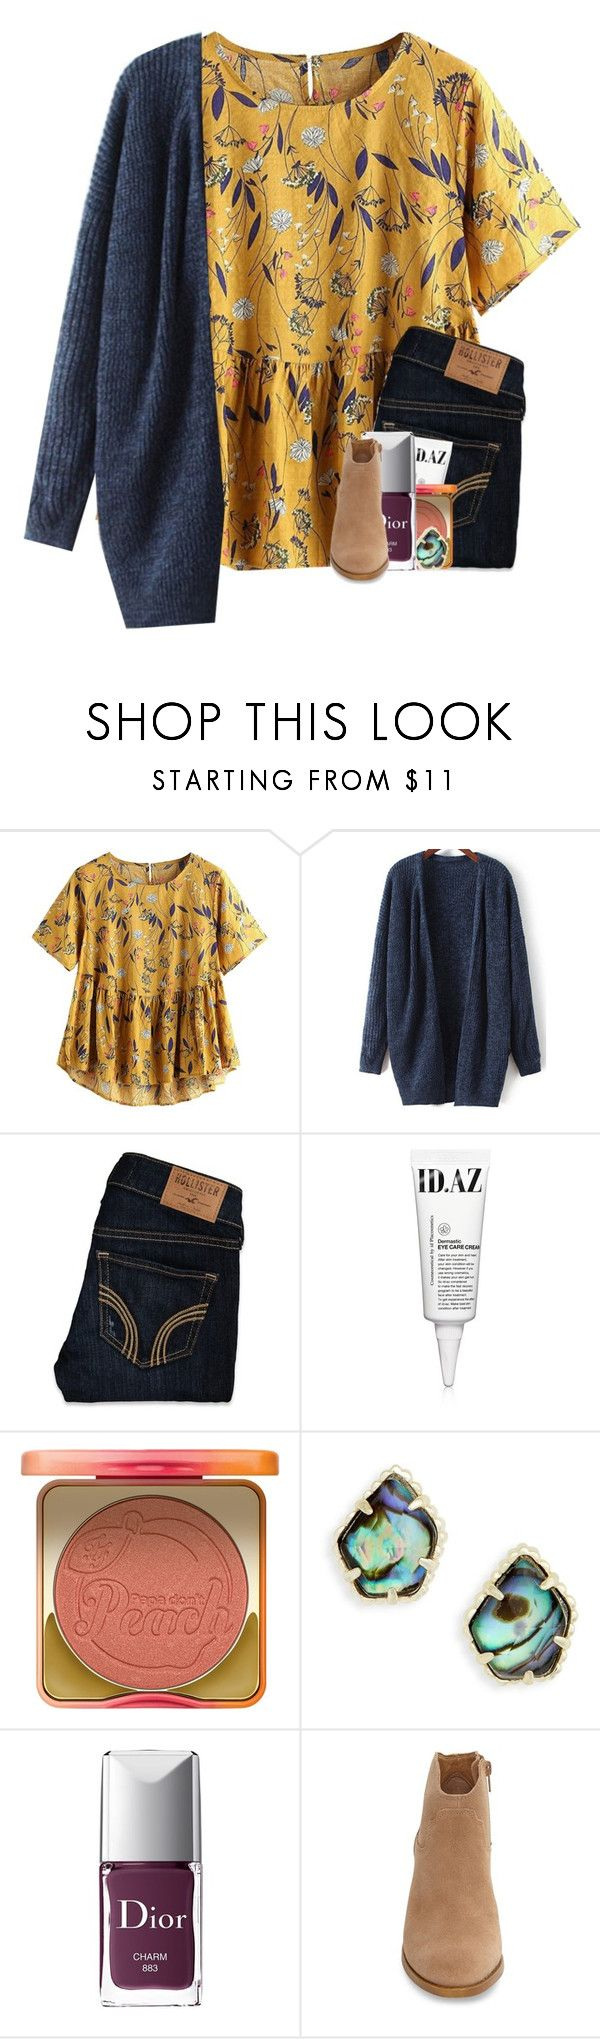 """happy first day of fall!!"" by madelinelurene ❤ liked on Polyvore featuring Hollister Co., ID.AZ, Too Faced Cosmetics, Kendra Scott, Christian Dior and Lucky Brand"